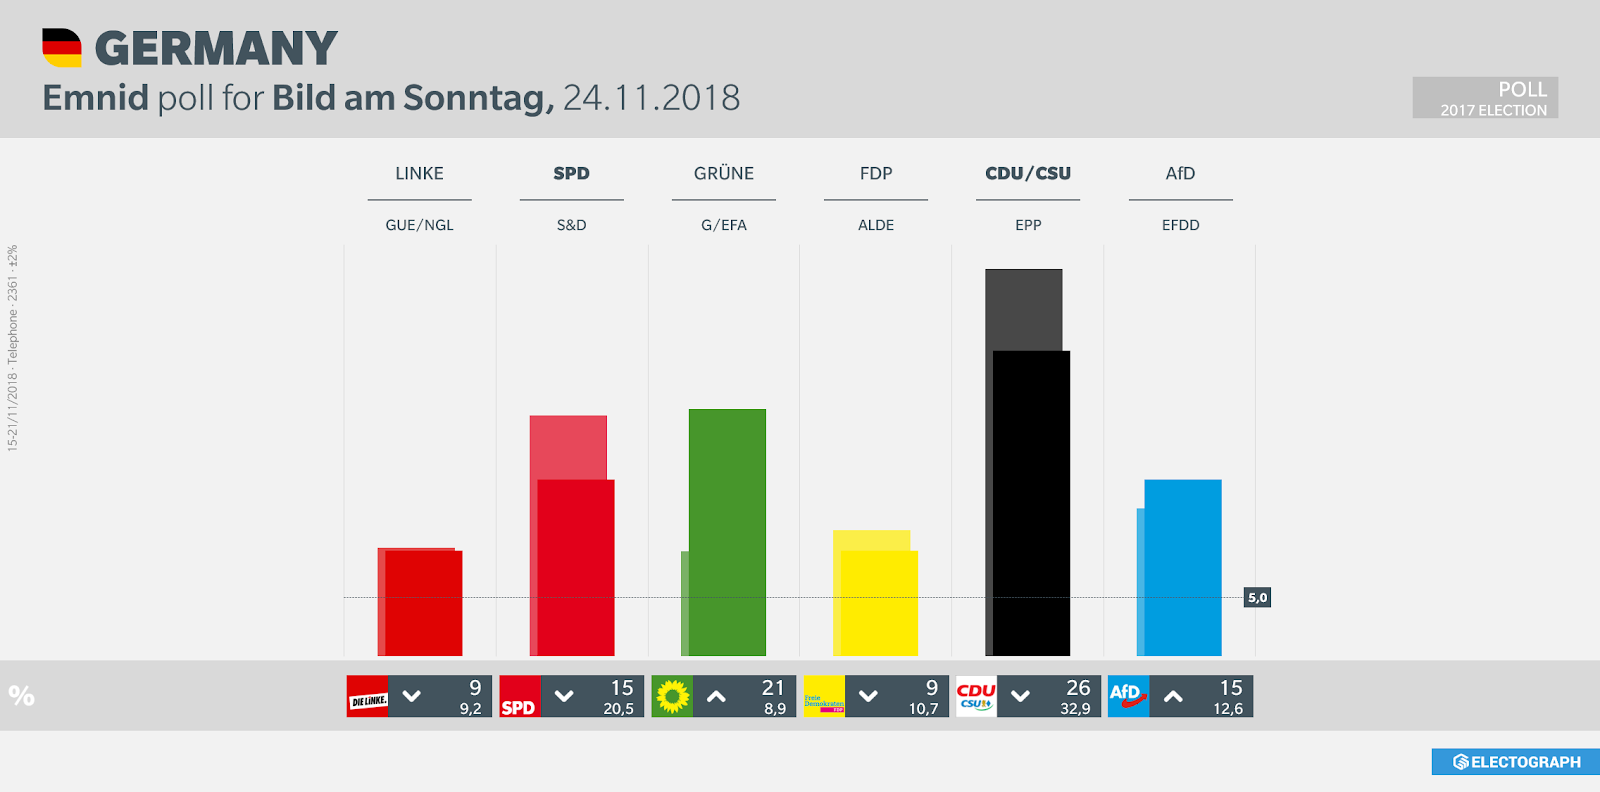 GERMANY: Emnid poll chart for Bild am Sonntag, 24 November 2018